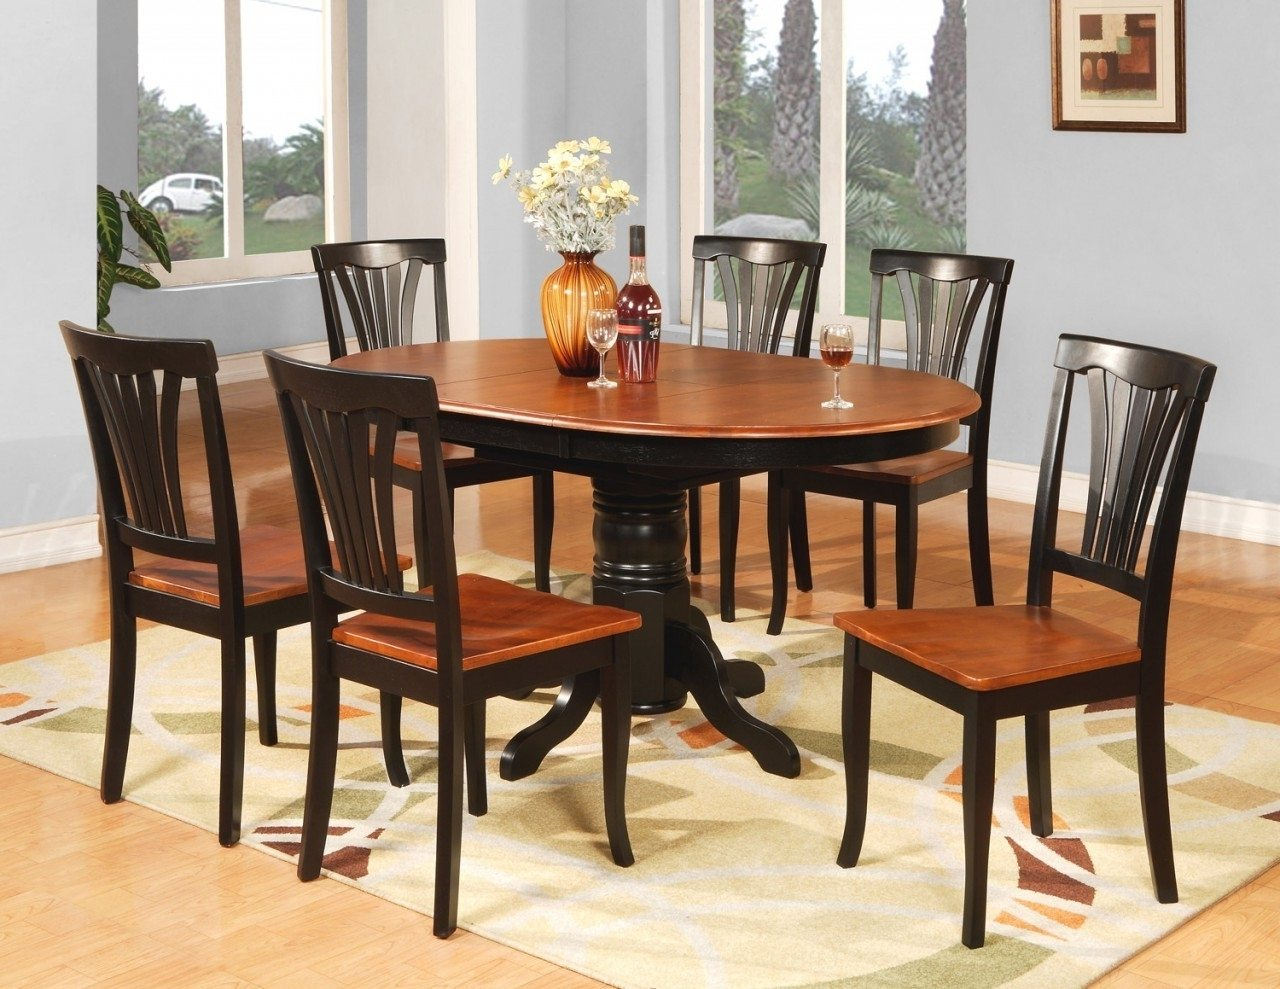 Cheap dining room tables chairs how to bargain for for Cheap dining room tables